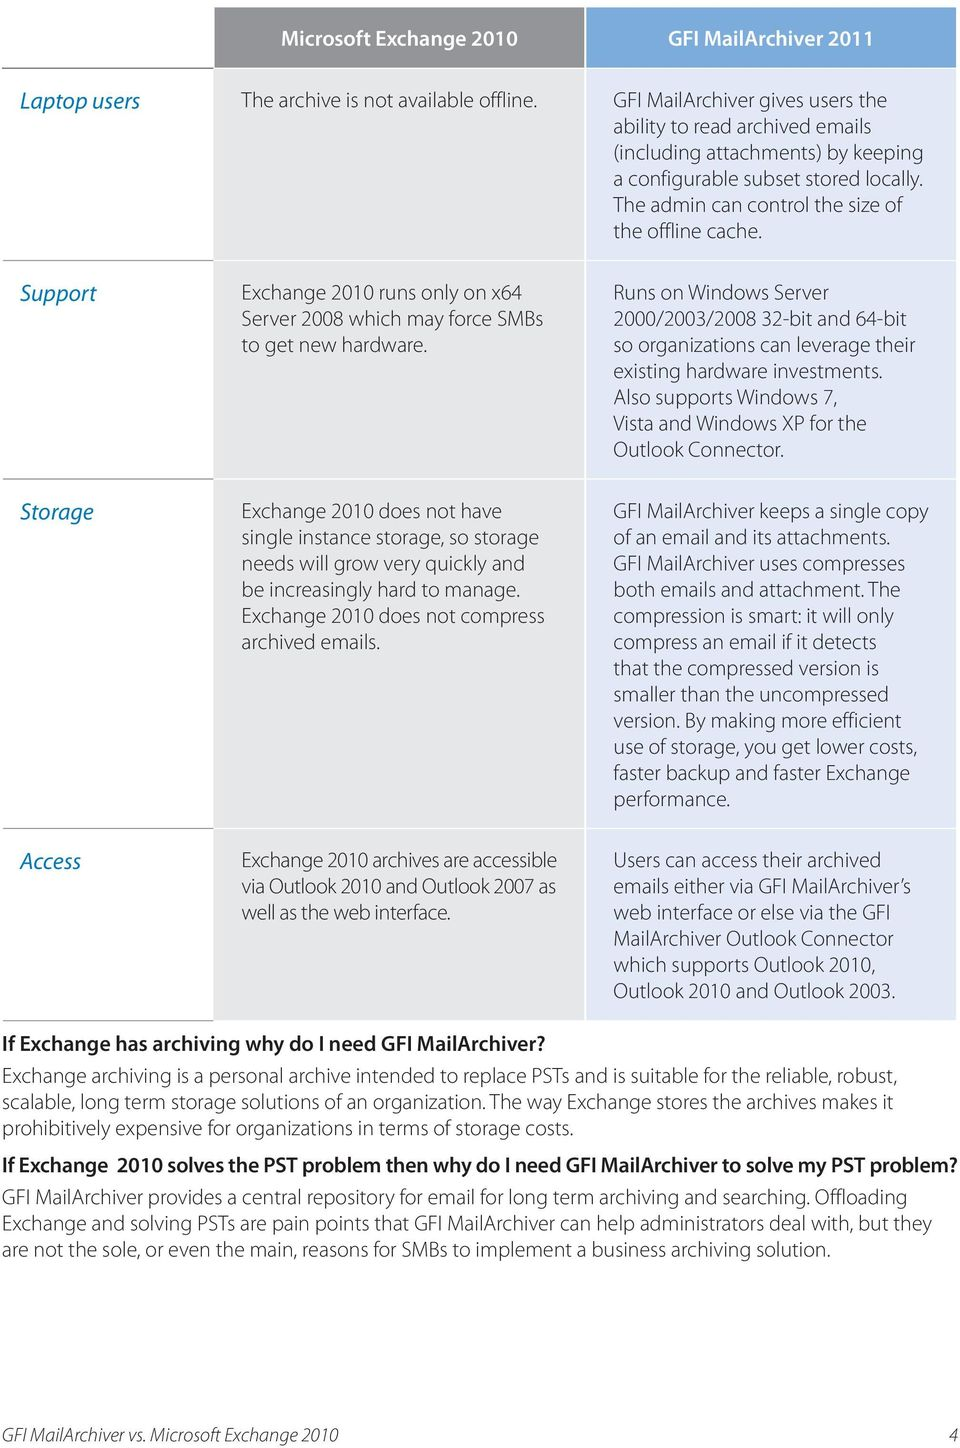 Support Exchange 2010 runs only on x64 Server 2008 which may force SMBs to get new hardware.